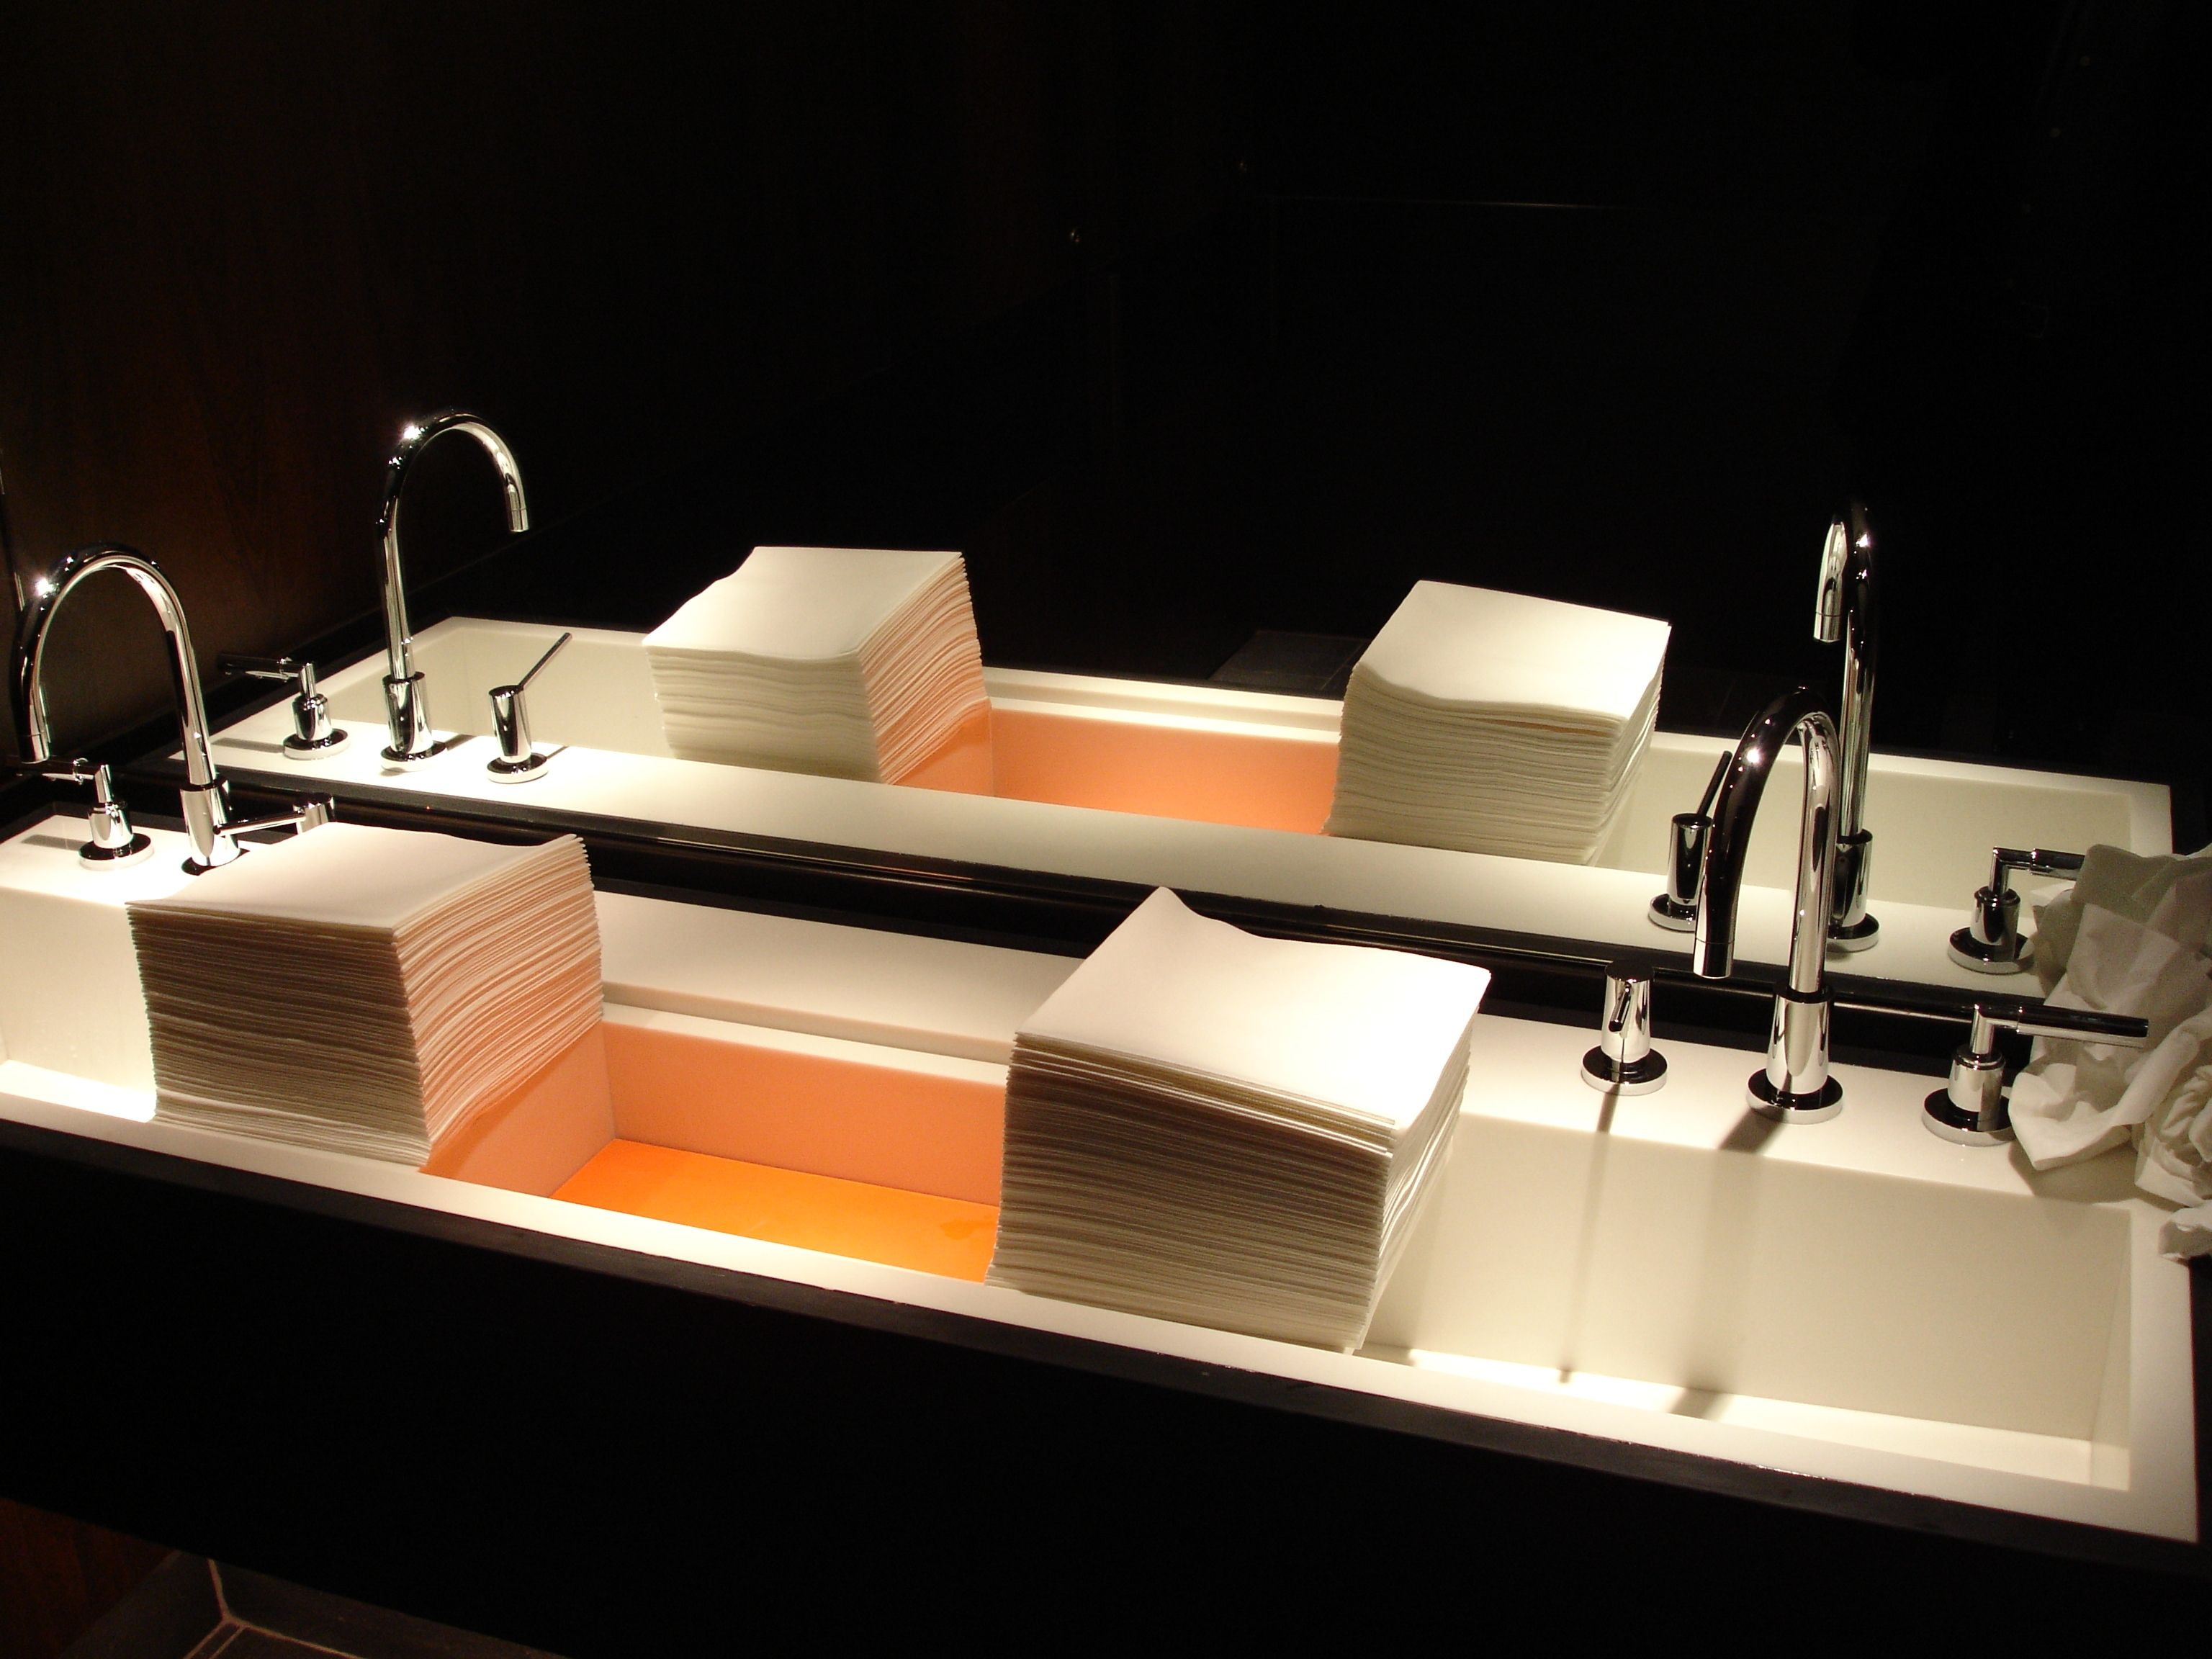 Custom Corian Sink Fabricated By Counter Production